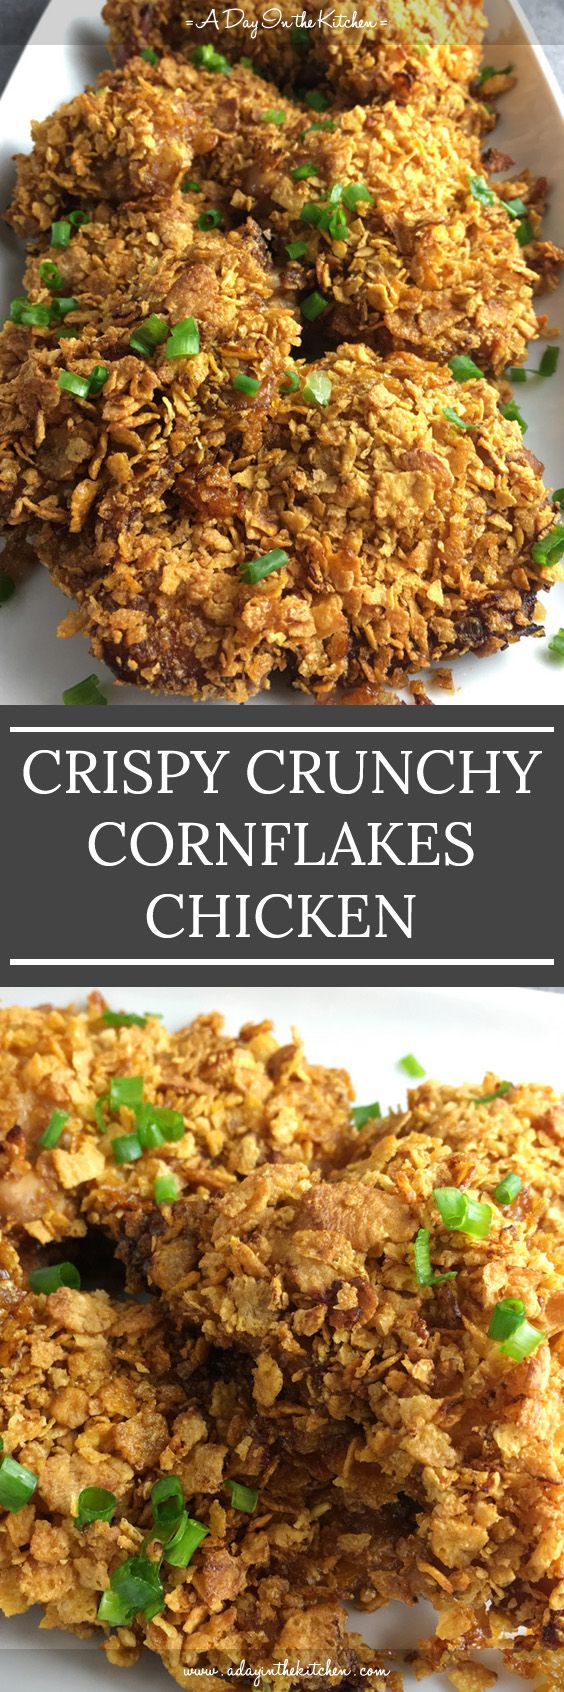 If you love fried chicken, but don't love deep-fried, then this chicken recipe is for you! Crispy Crunchy Cornflakes Chicken is juicy, tasty and oven-baked!